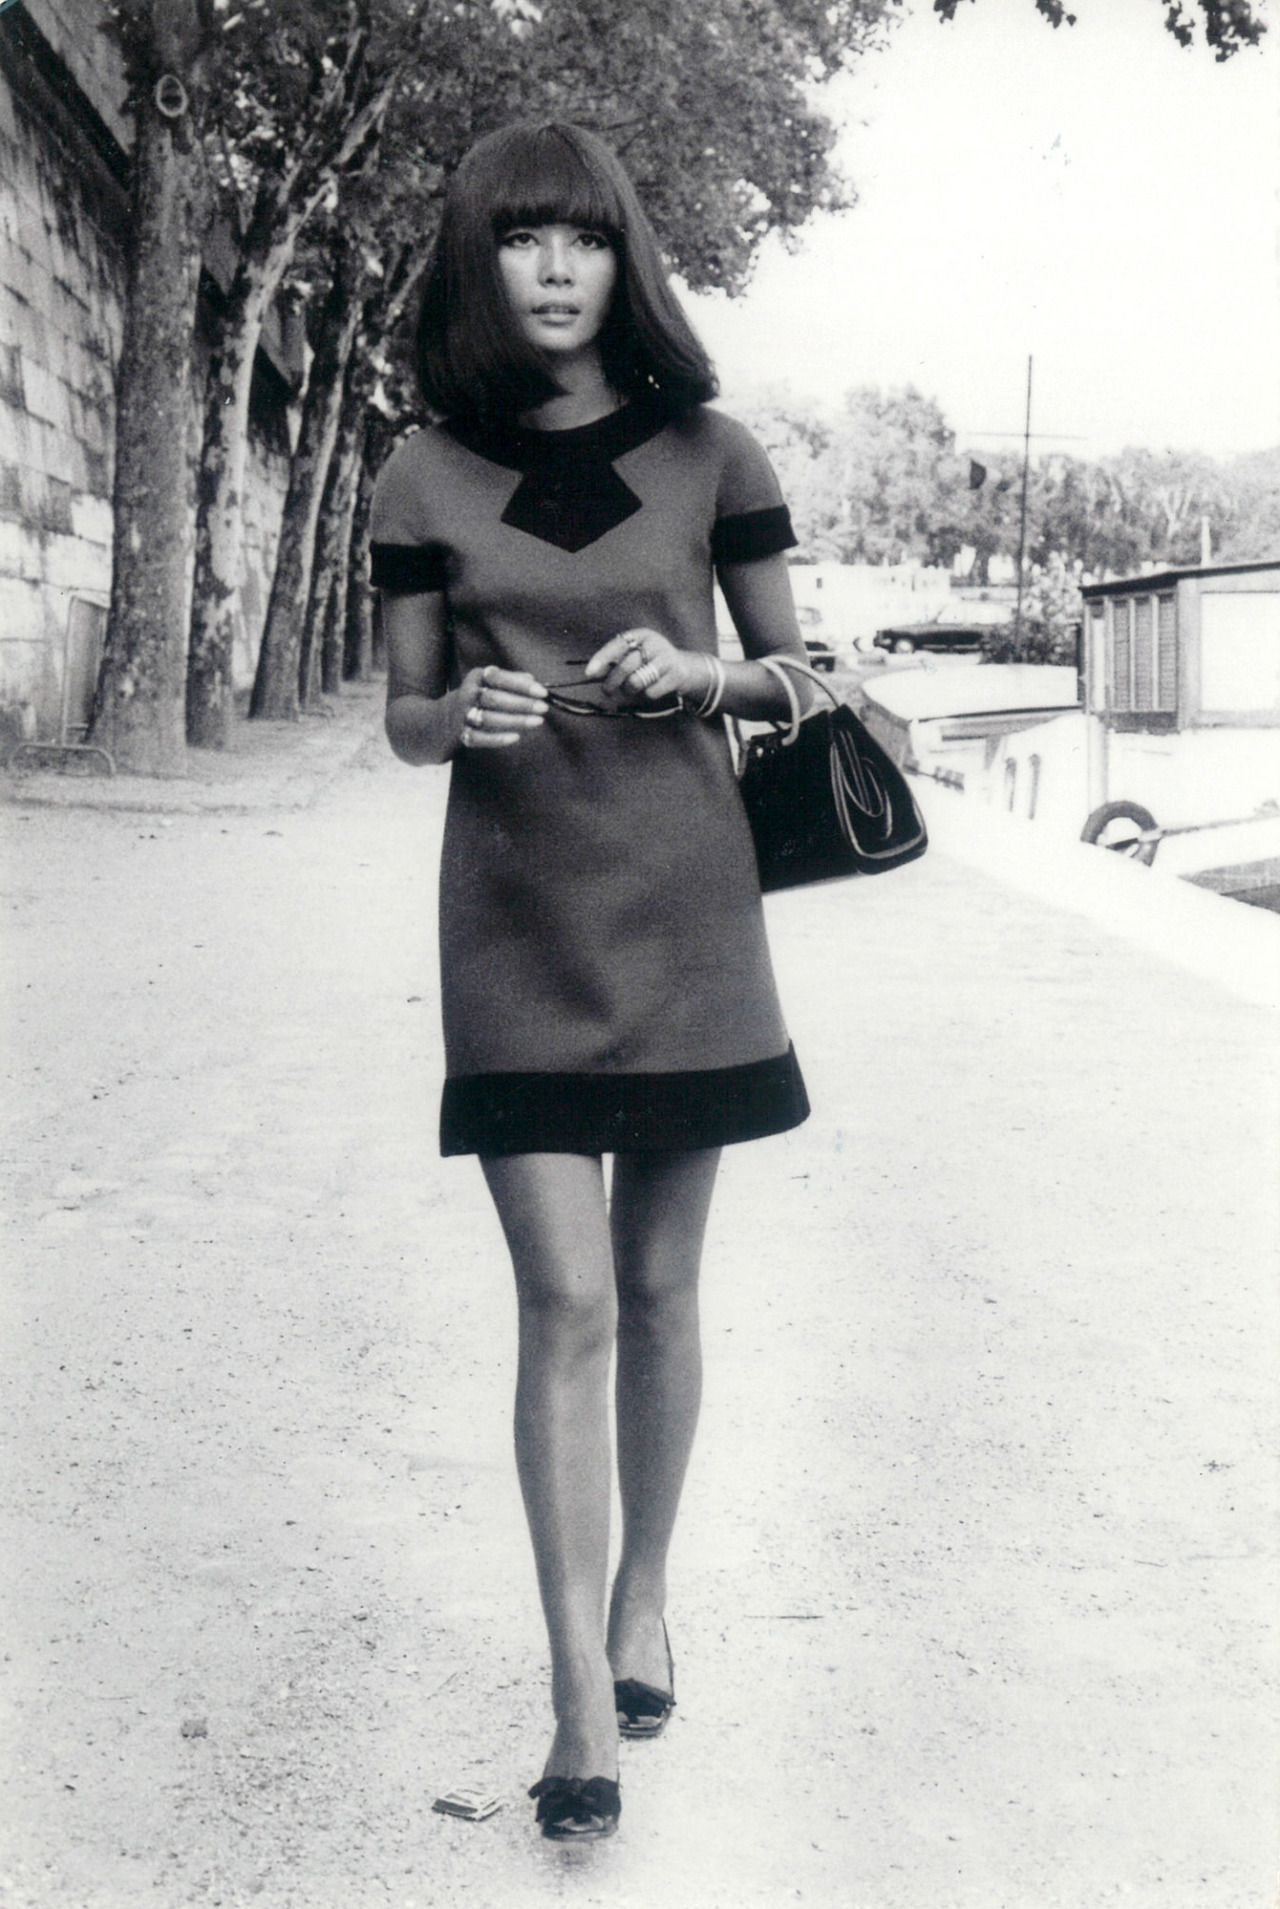 Paris, August 1969: Hiroko wearing a red & black wool dress by Cardin, handbag by Givenchy and shoes by Charles Jourdan. Photo by Pierluigi Praturlon.